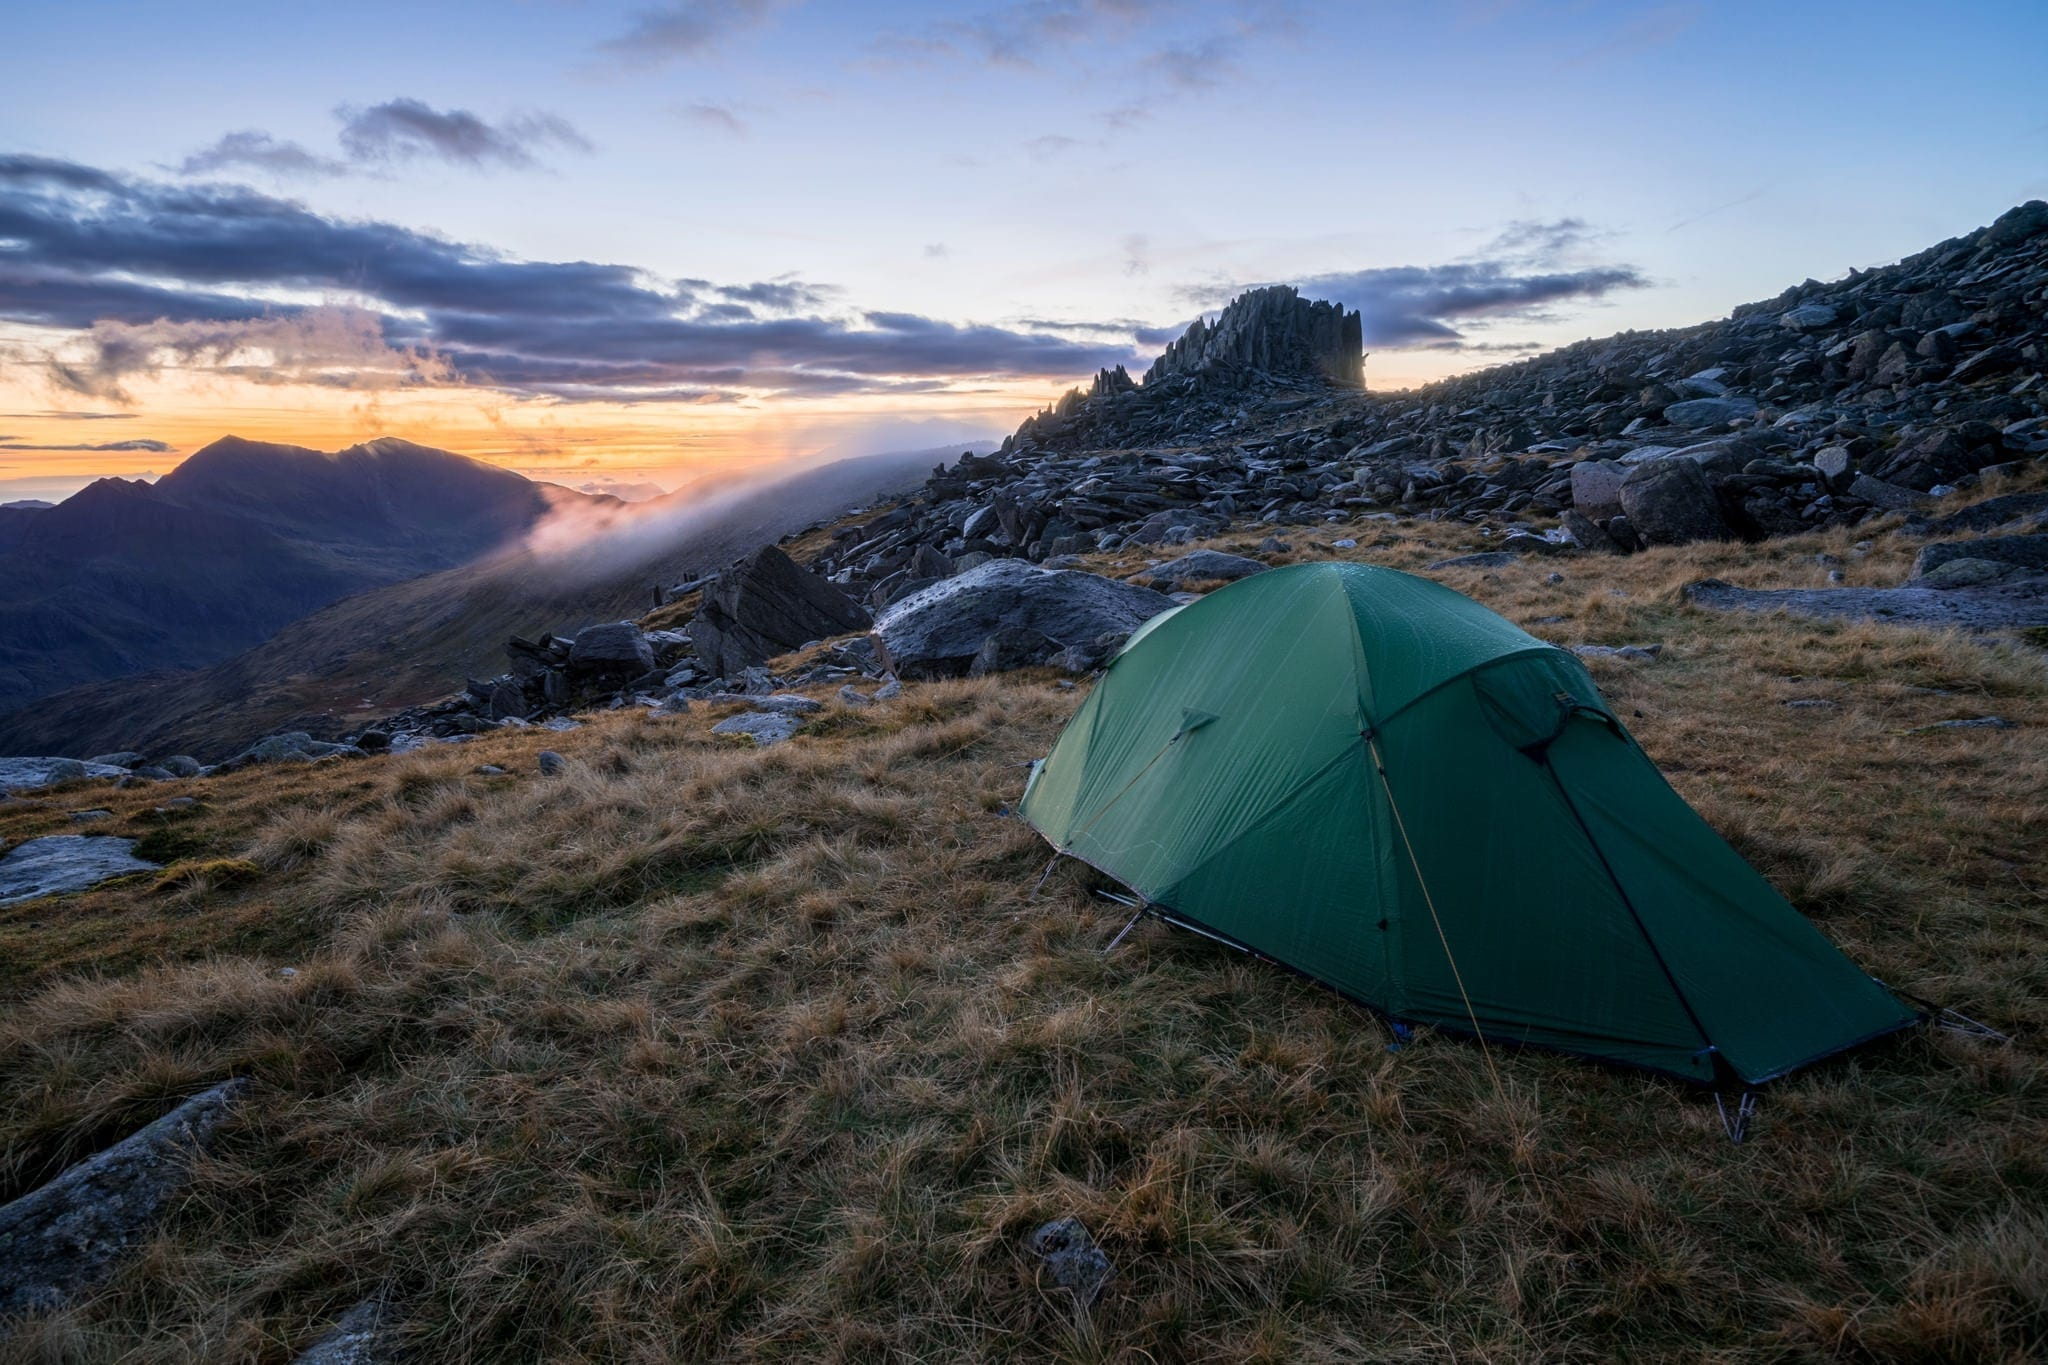 Glyder Fach Wild Camp - Snowdonia Wild Camping Photography Workshop